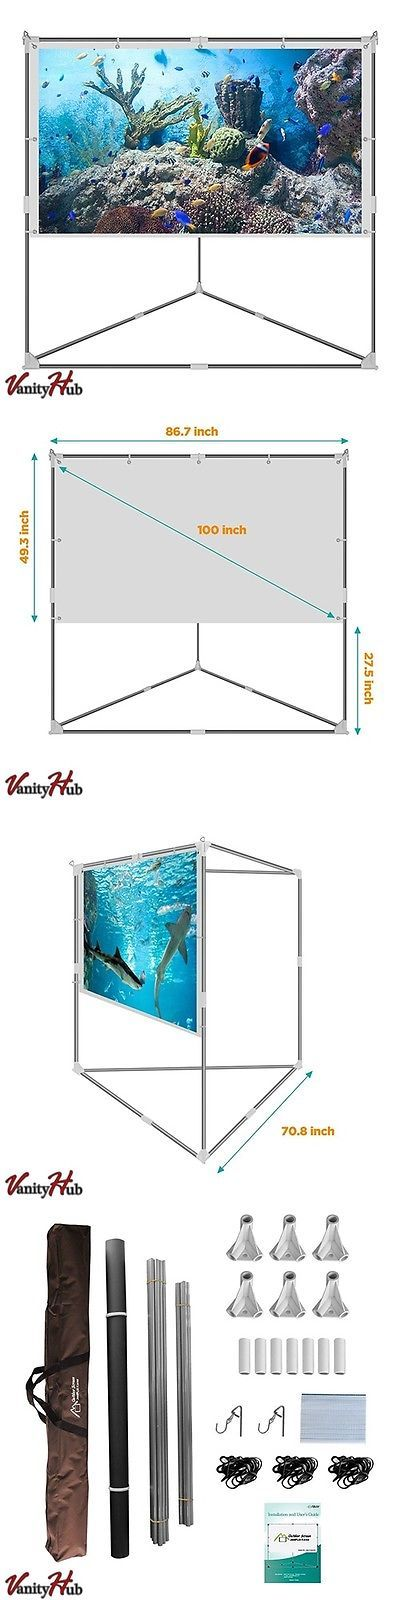 projection screens and material video projector screen outdoor movie portable mobile large home backyard patio